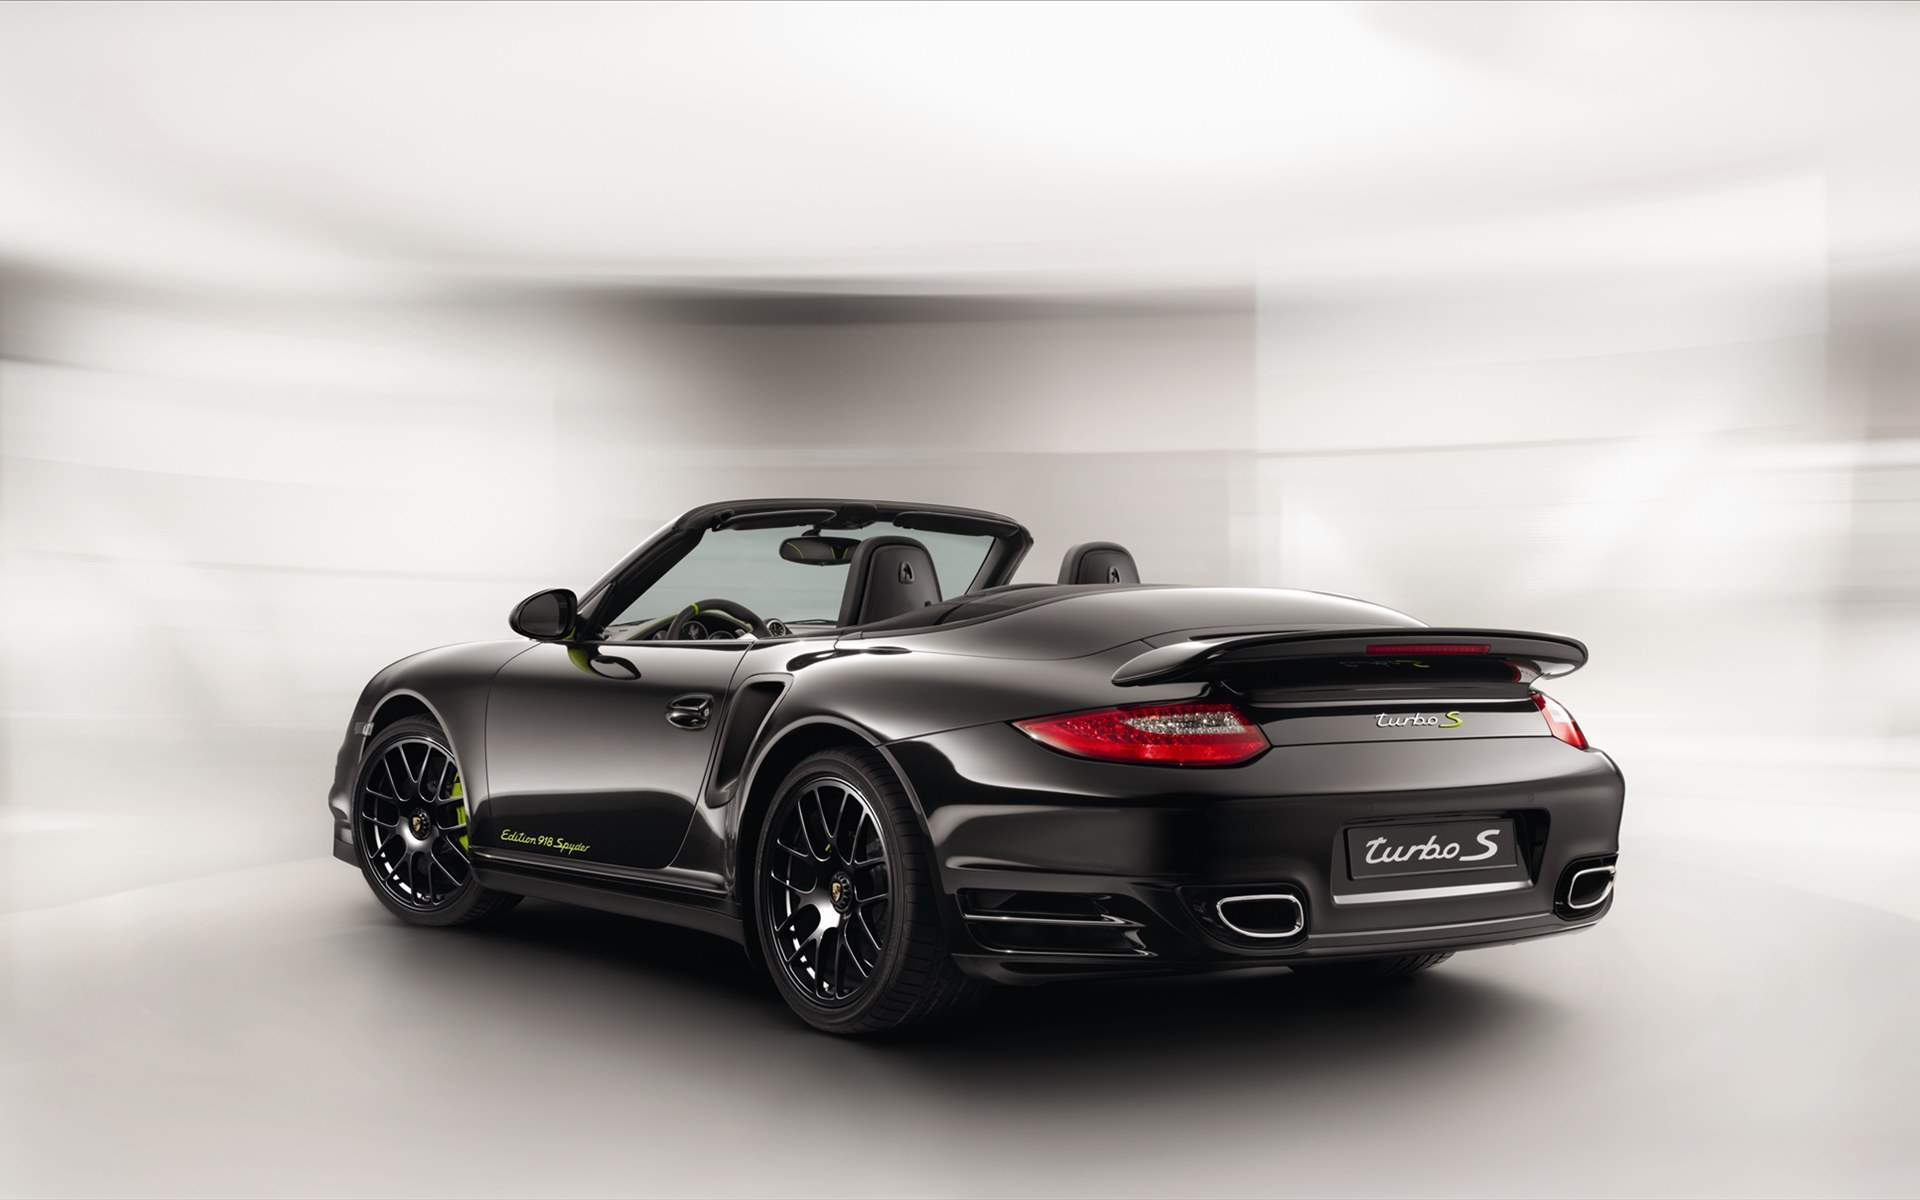 2014 porsche 918 spyder 4147836 2560x1600 all for desktop. Black Bedroom Furniture Sets. Home Design Ideas